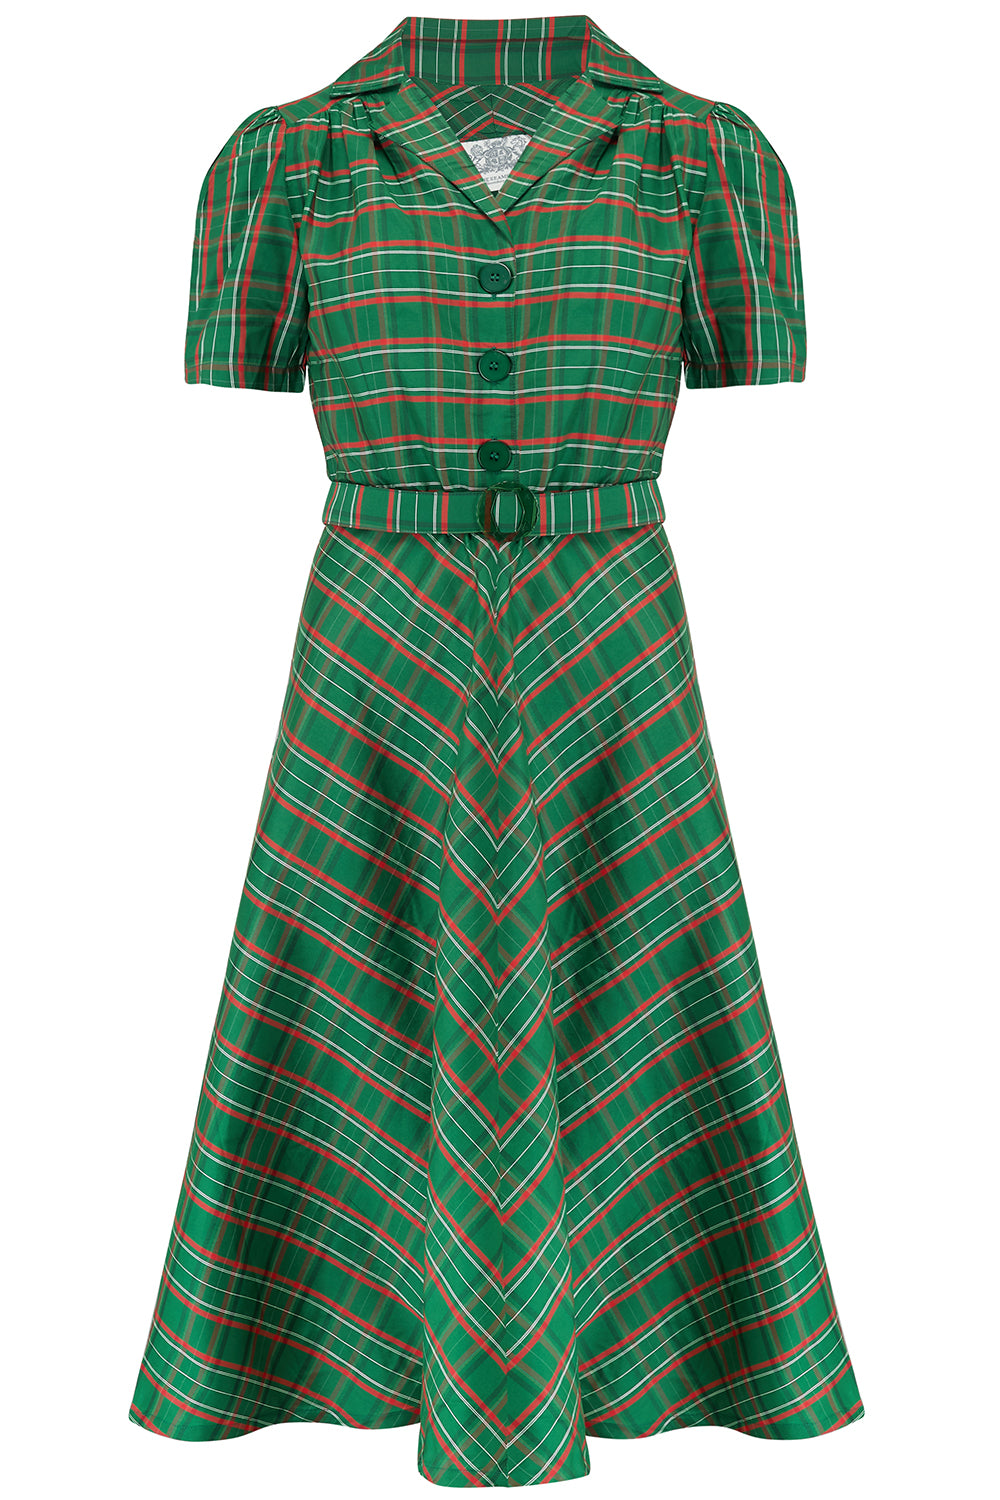 "The Seamstress Of Bloomsbury ""Lisa"" Tea Dress in Green Taffeta Tartan, Authentic 1940s Vintage Style - RocknRomance Clothing"